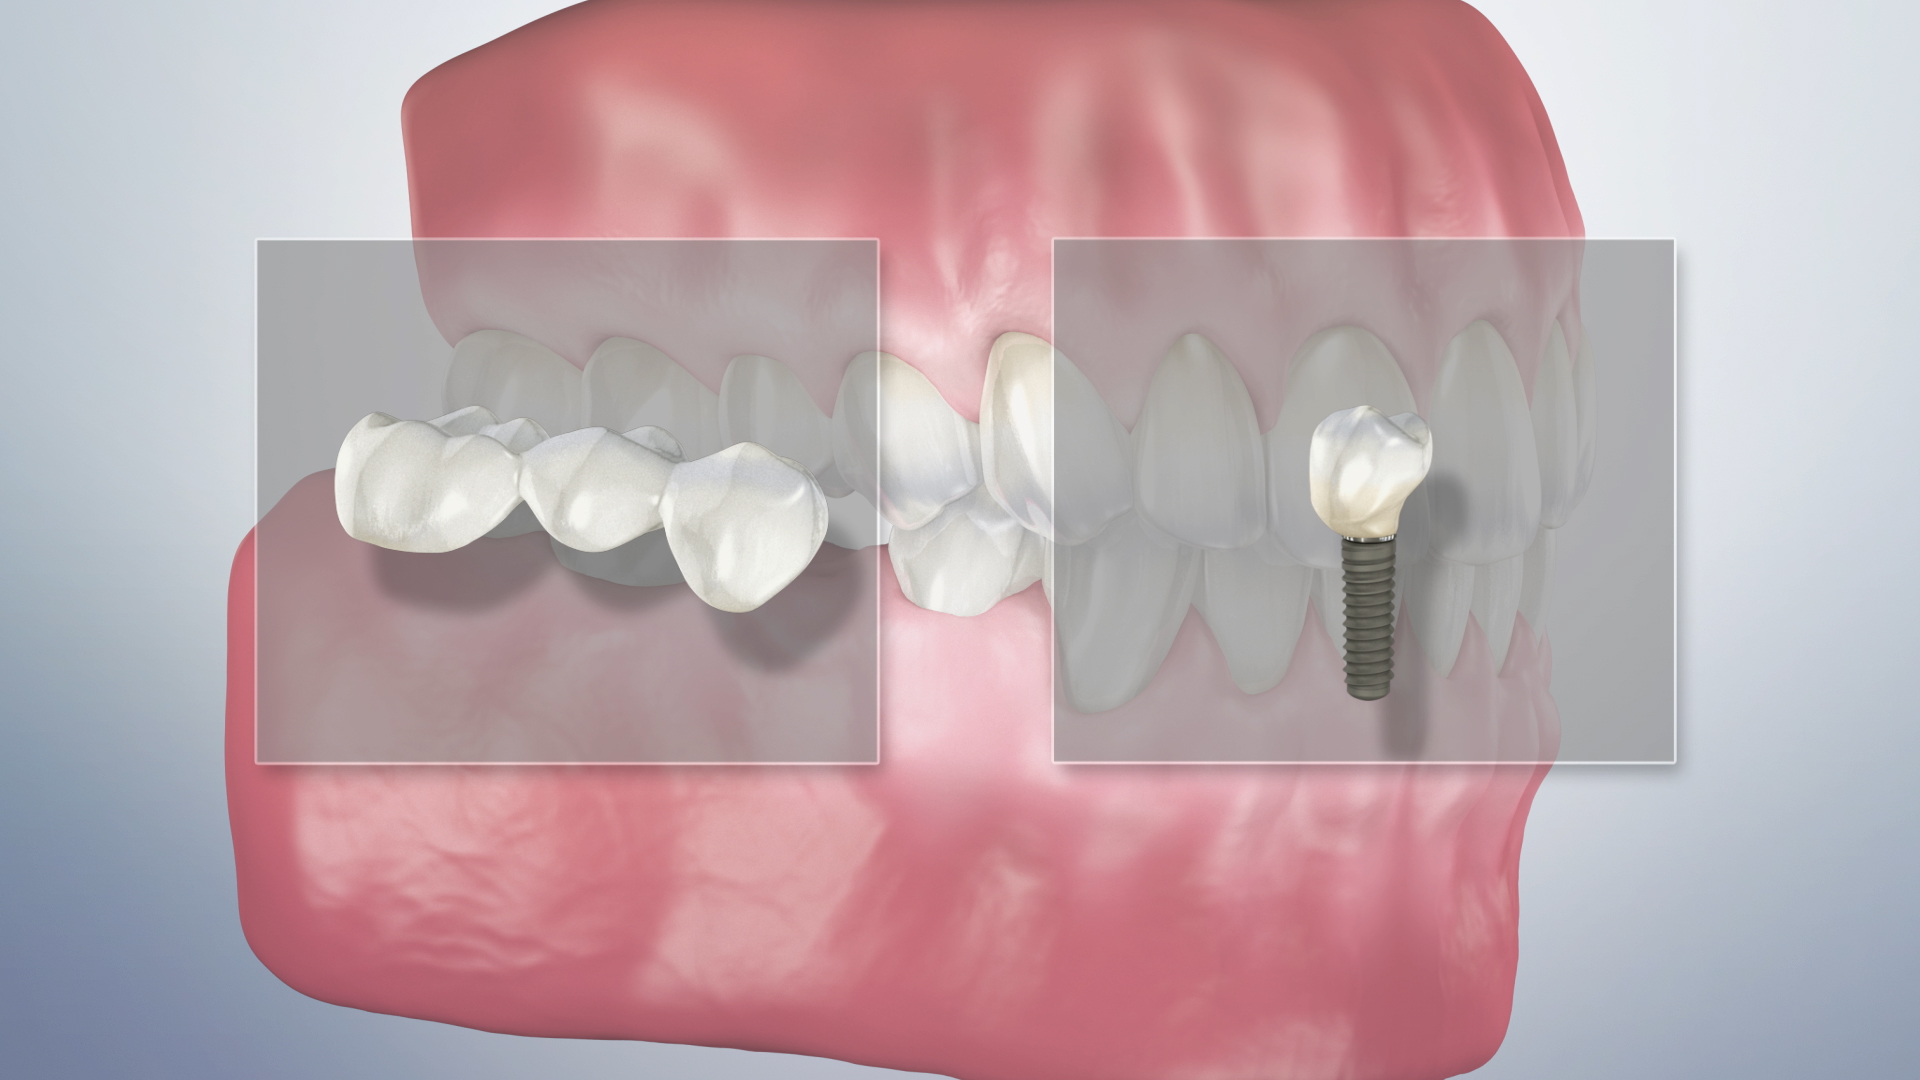 Thumbnail for a video on Bridge Versus an Implant